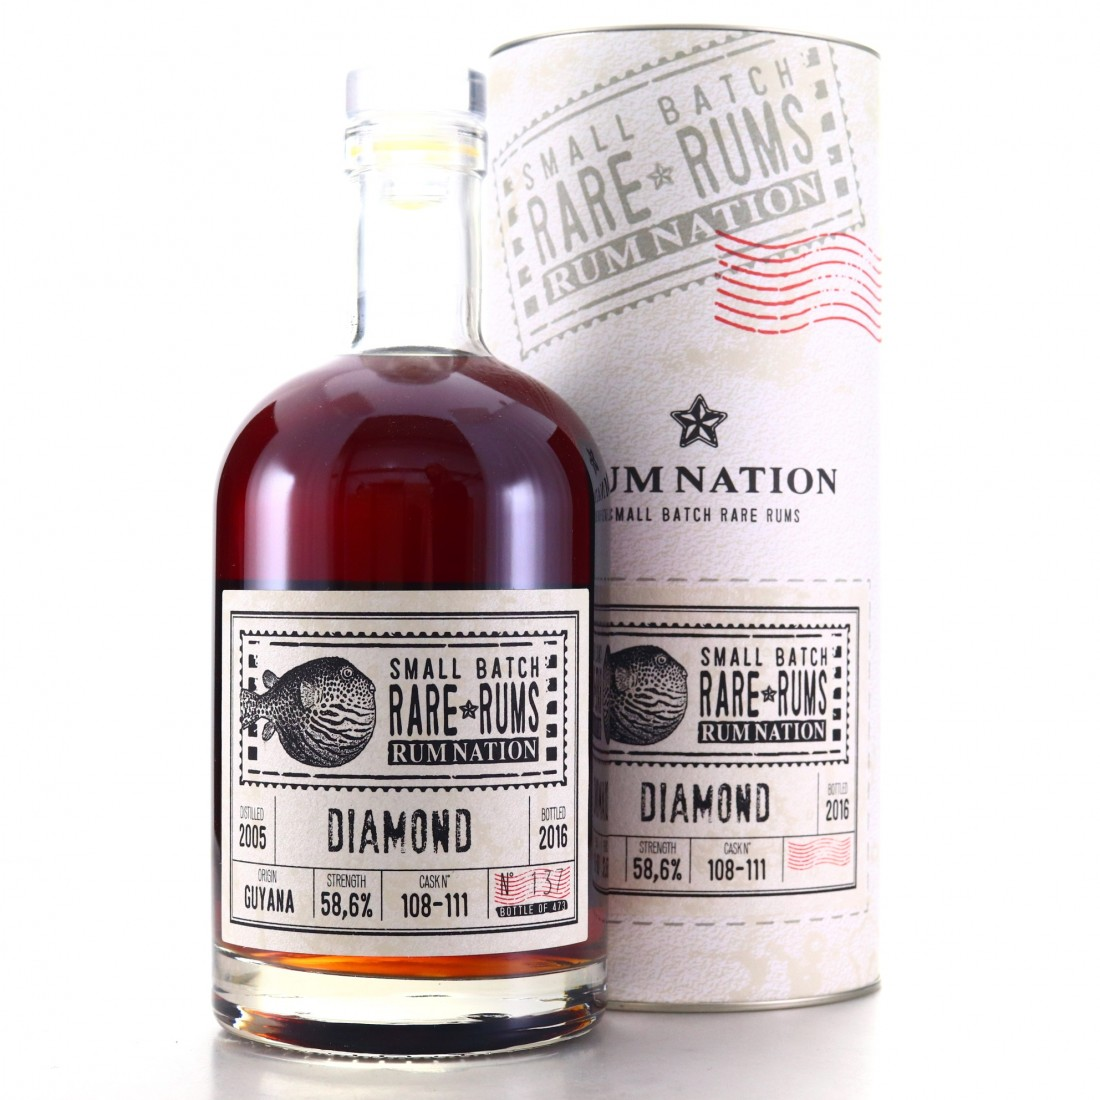 Diamond 2005 Rum Nation Small Batch